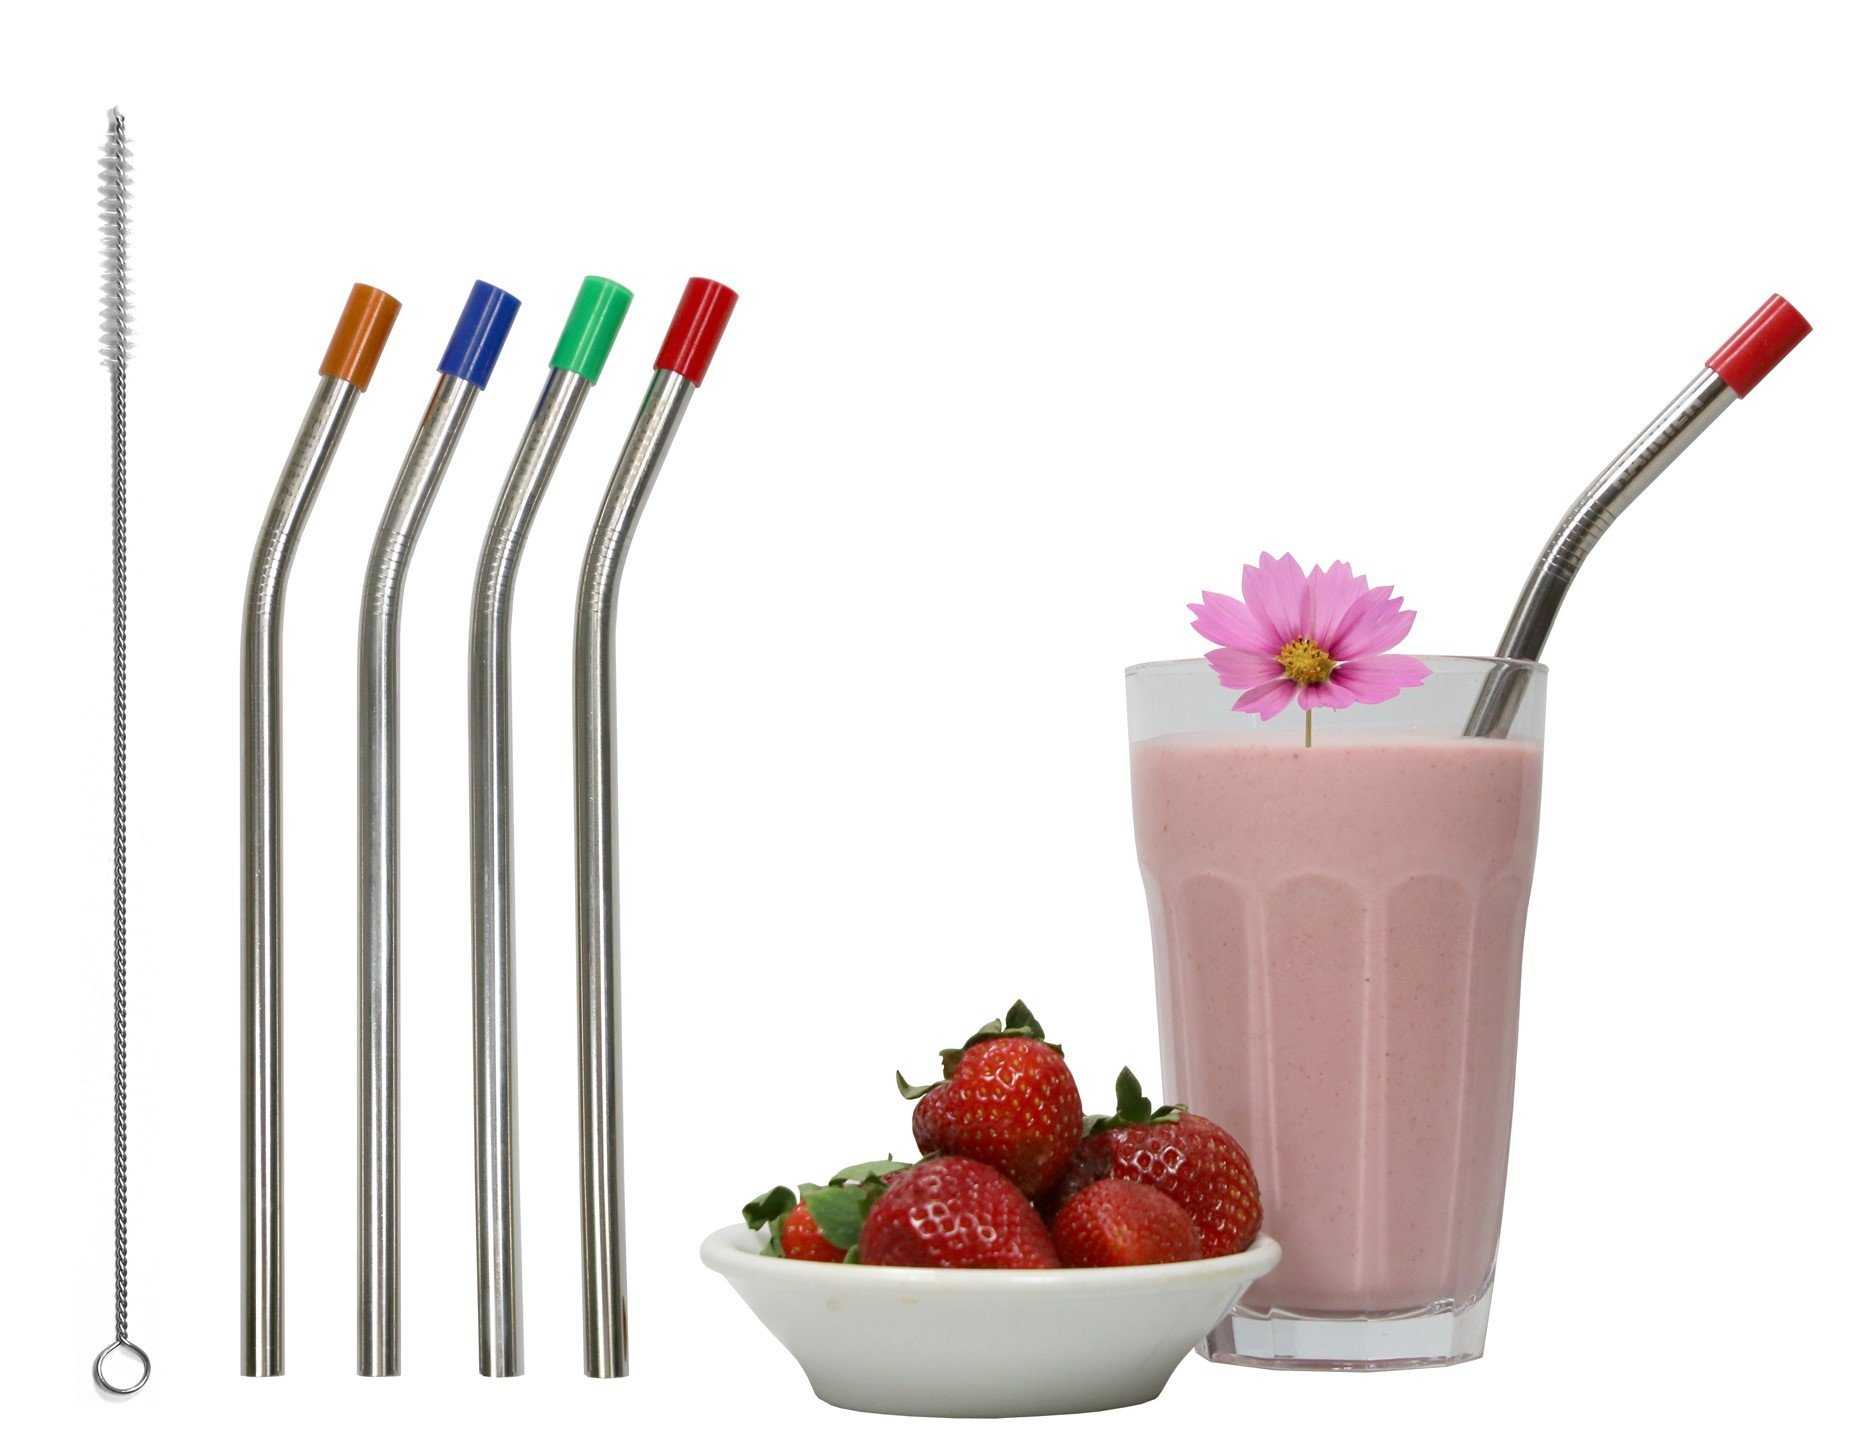 RAINIER Smoothie Drinking Straws | Extra Wide Reusable Stainless Steel Metal | Jumbo Size for Thick, Chunky, Frozen Drinks & Boba Tea | Set of 4 with Comfort Tips, Cleaning Brush (Angled, 3/8Wx8.5L)